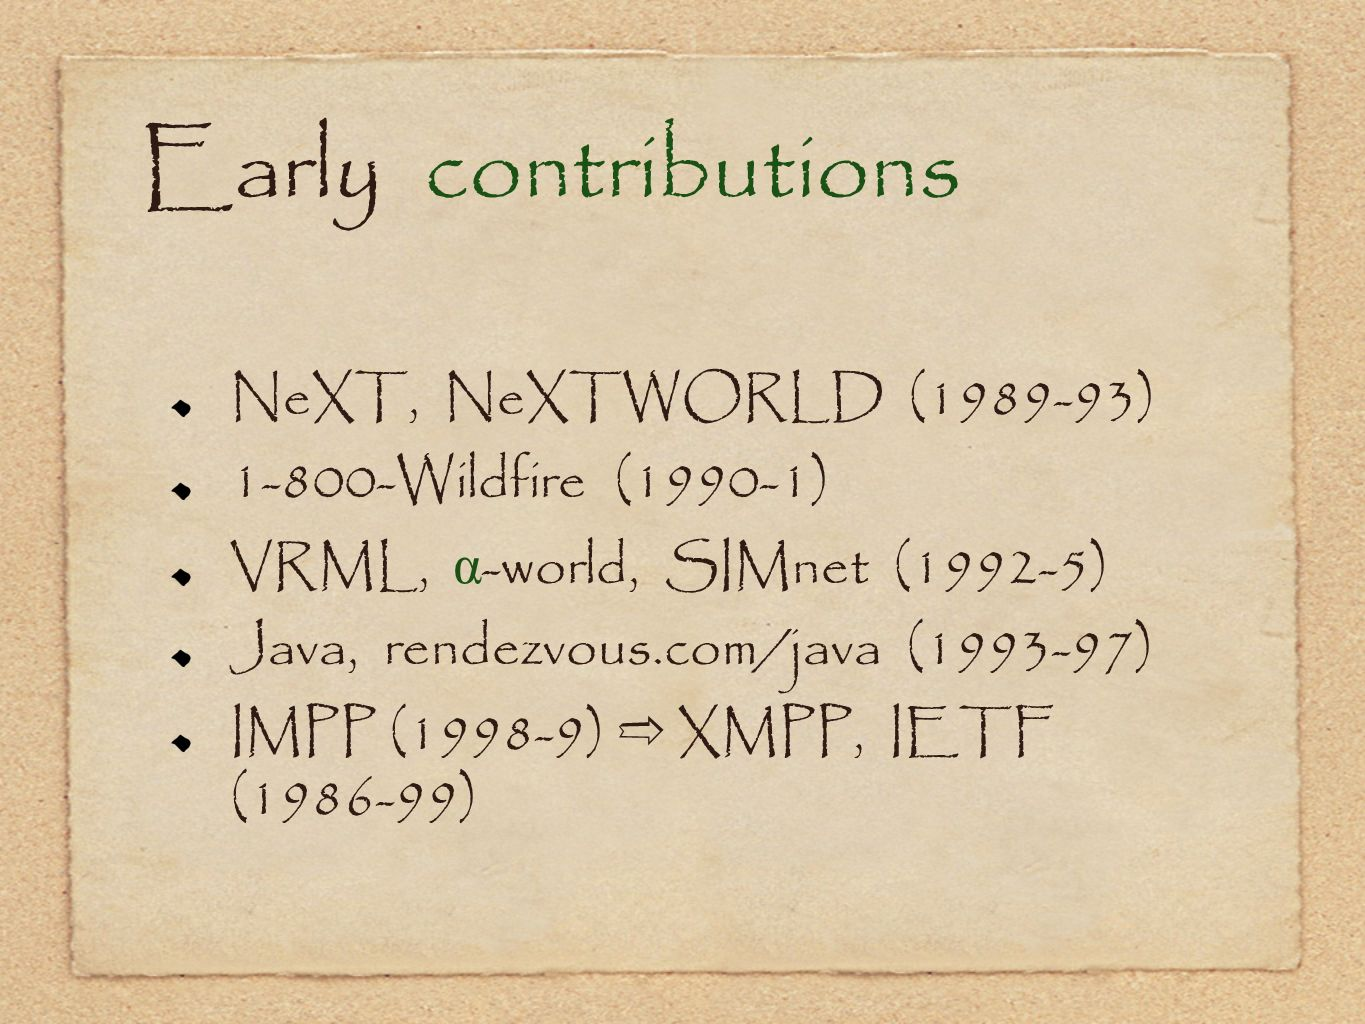 Early contributions NeXT, NeXTWORLD (1989-93) 1-800-Wildfire (1990-1)